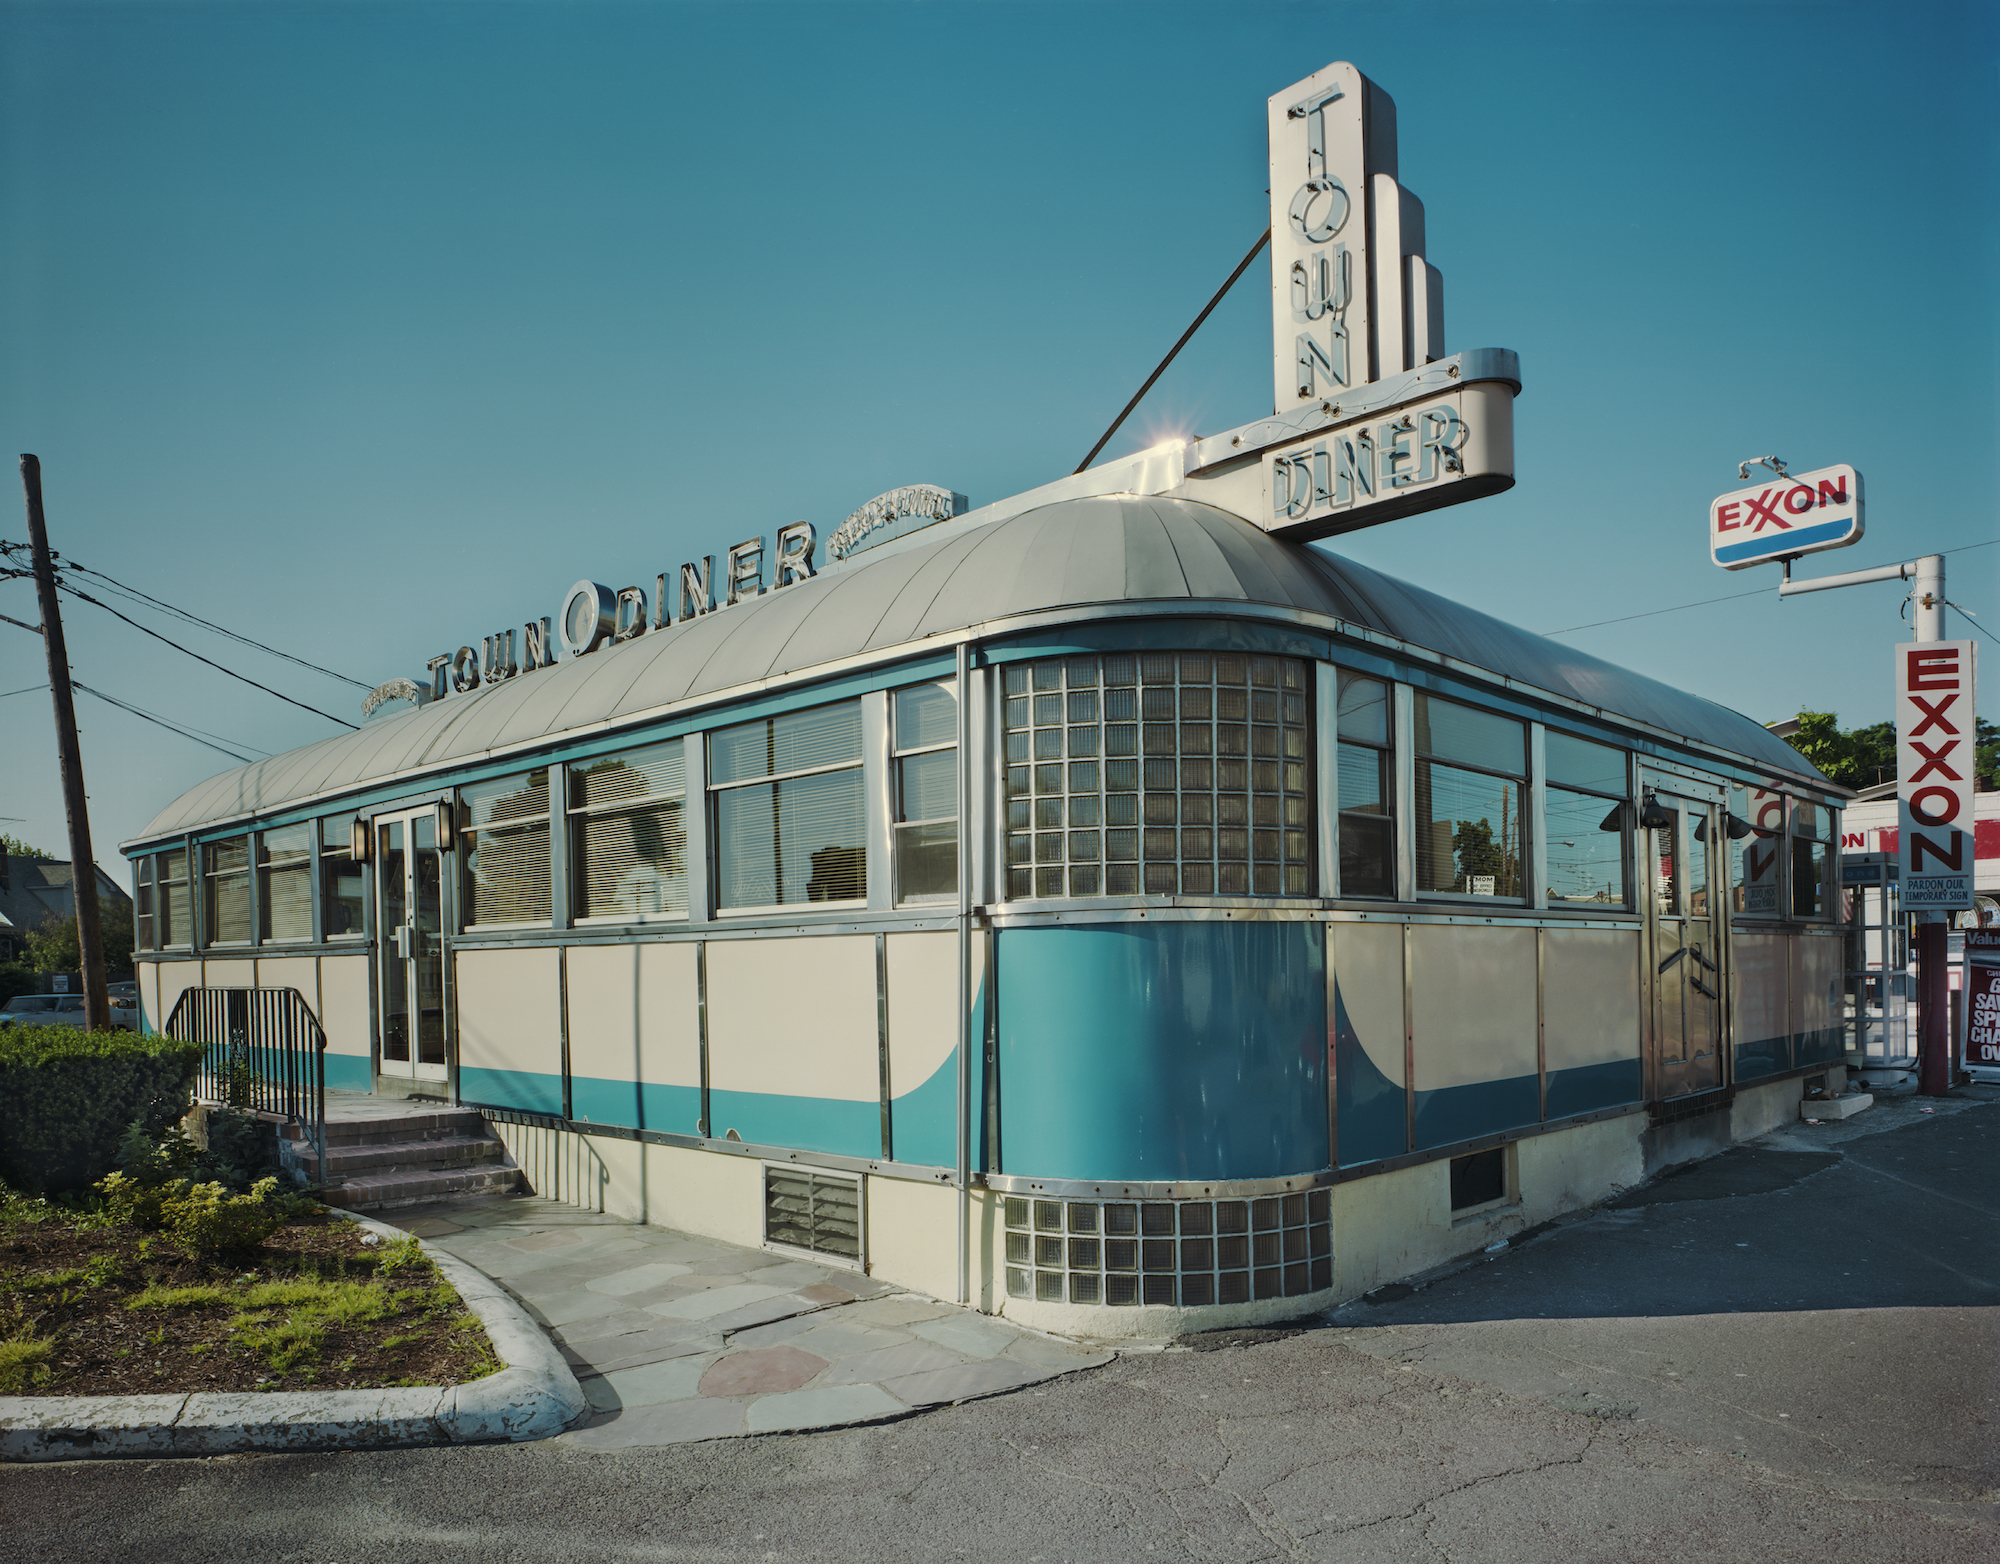 Jim Dow, The Town Diner exterior, US 20, Watertown, Massachusetts, 1979. Courtesy the artist